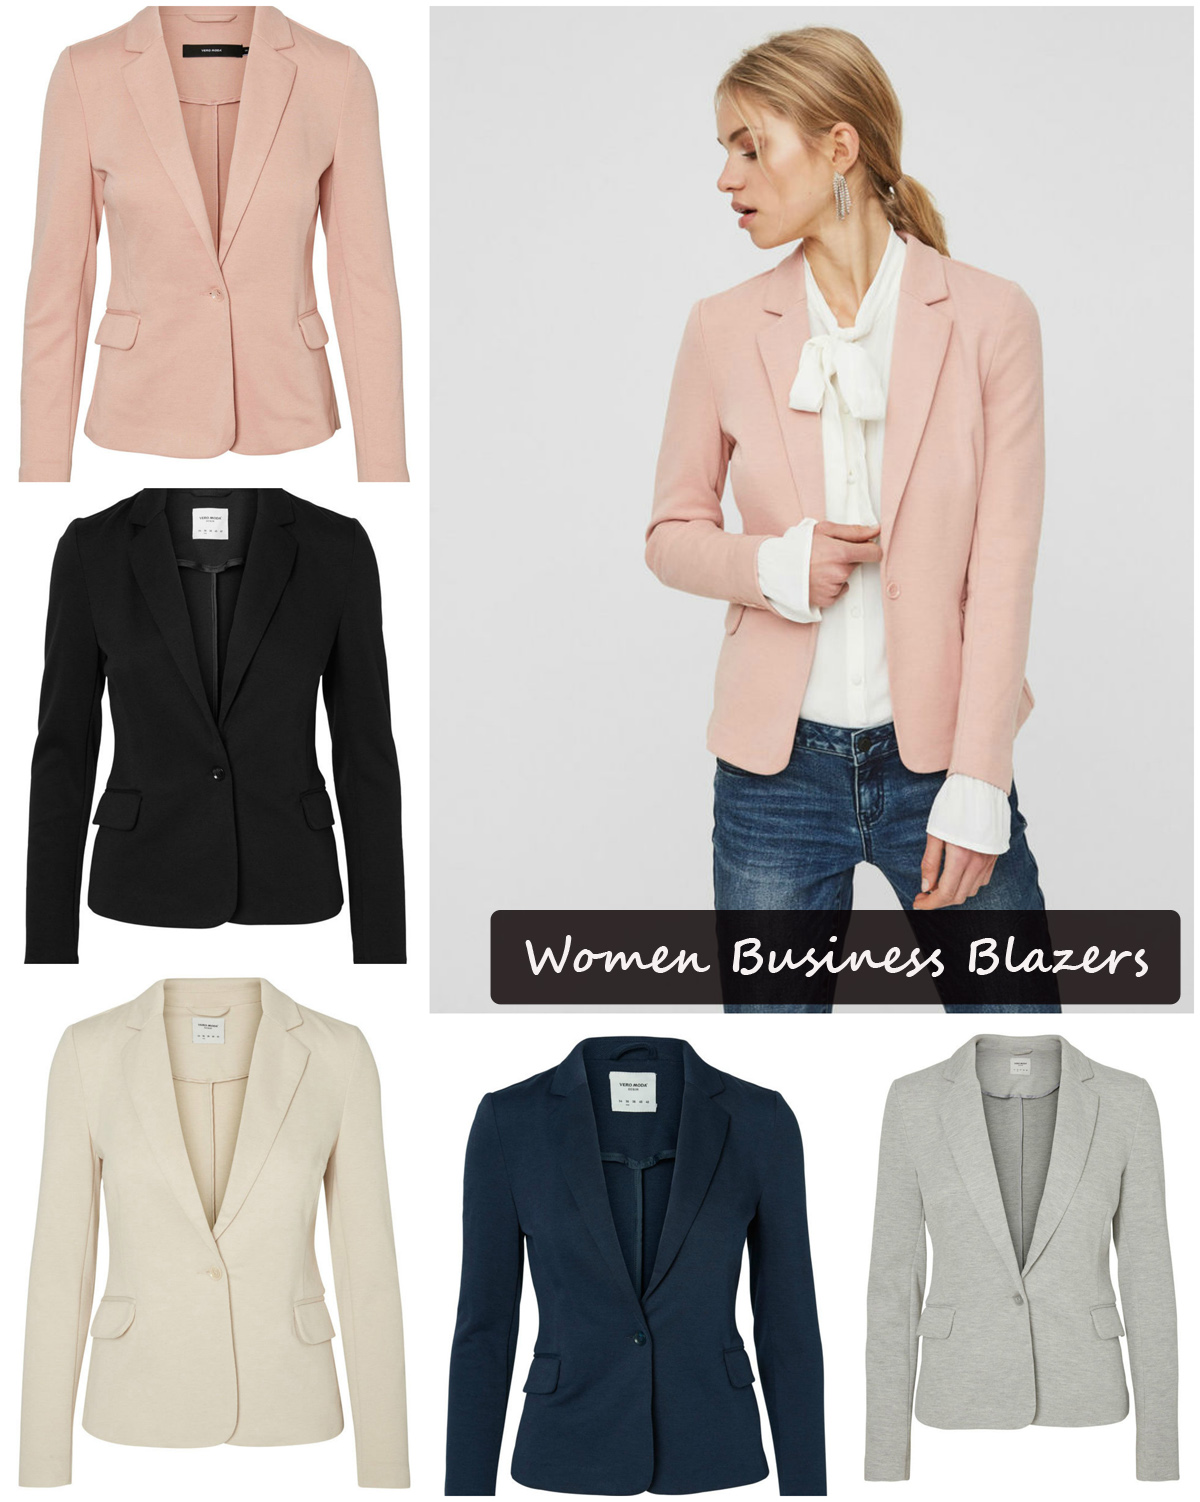 women-business-blazers